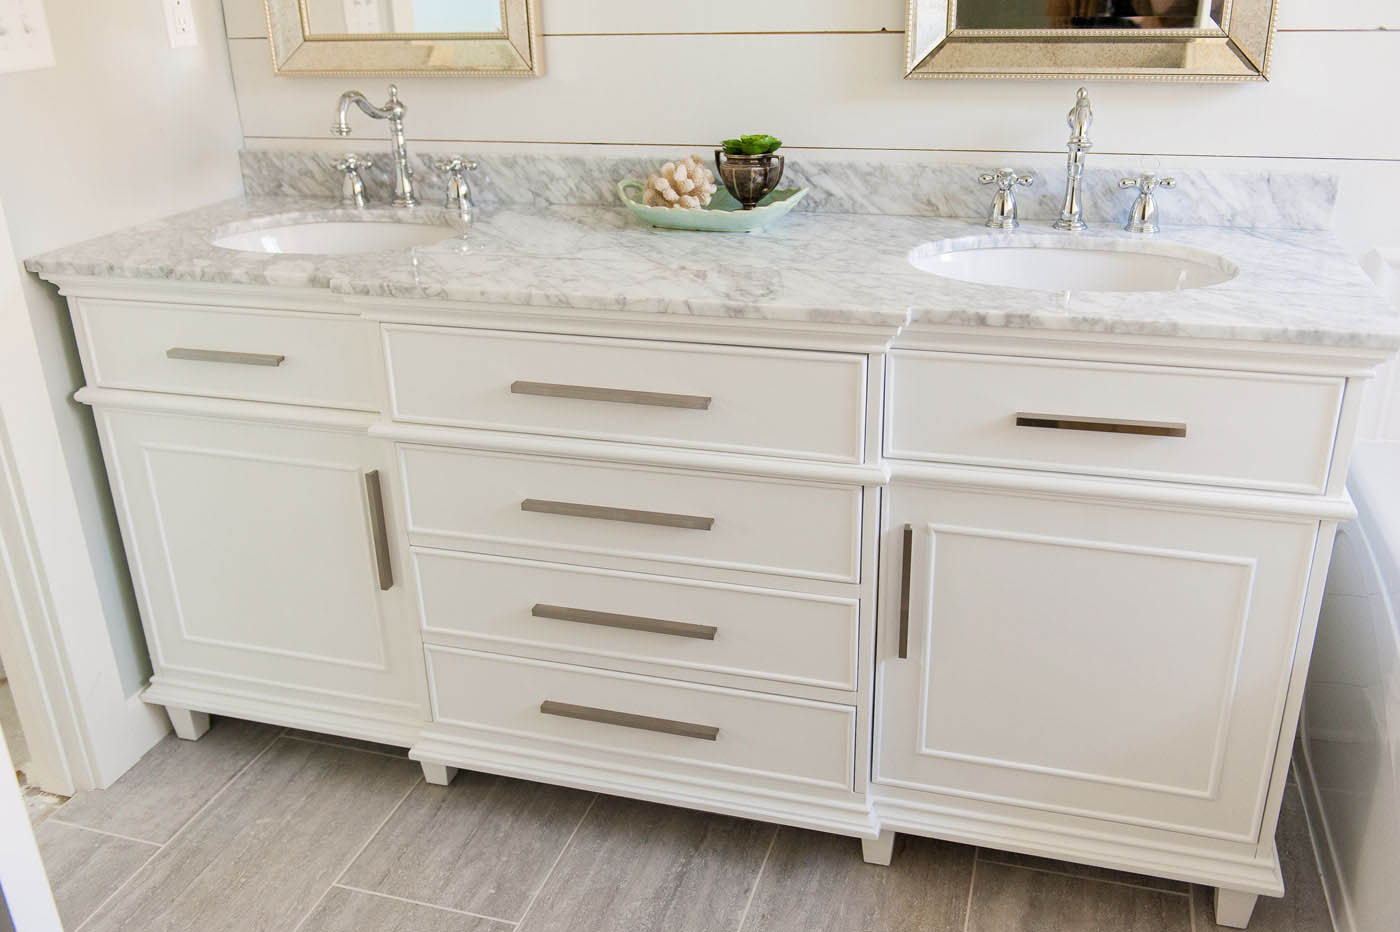 Bathroom Double Vanity Ideas The Ultimate Guide To Buying A Bathroom Vanity The